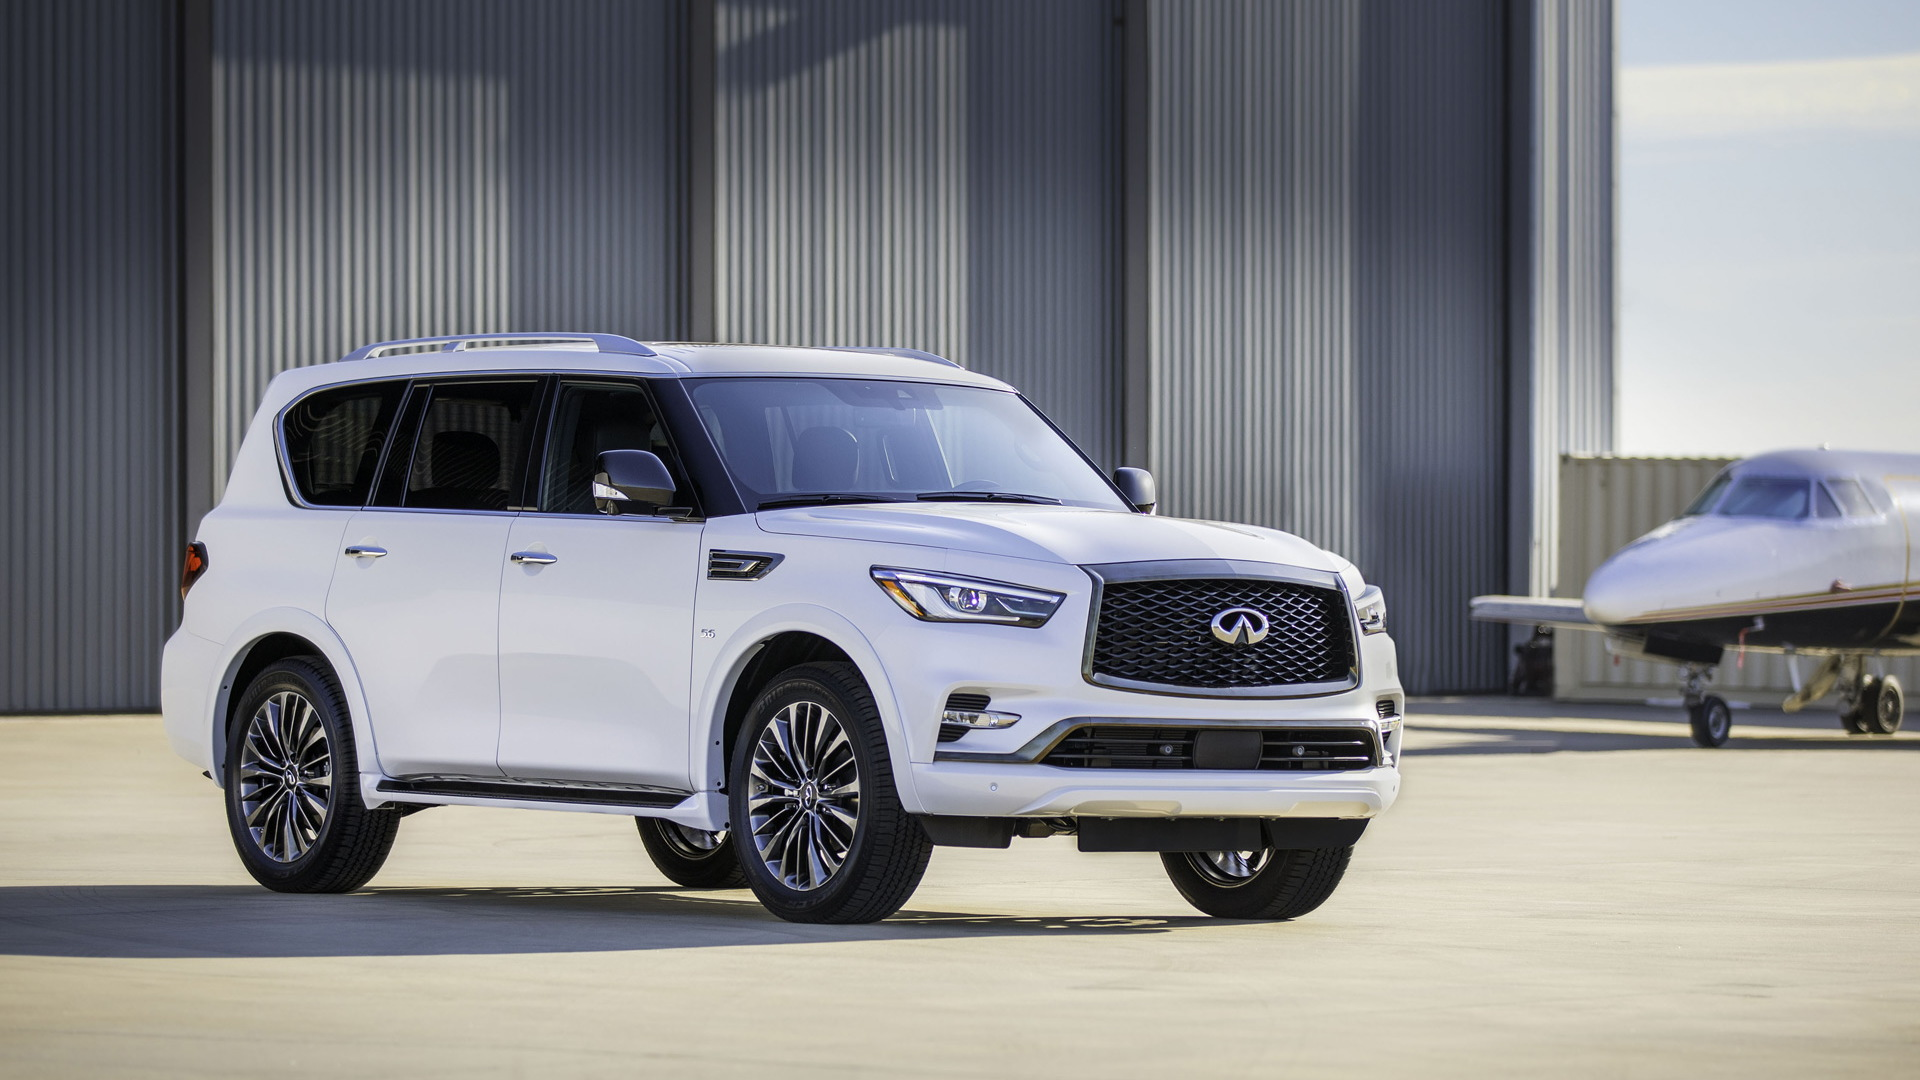 2020 infiniti qx80 arrives with new dash  edition 30 package